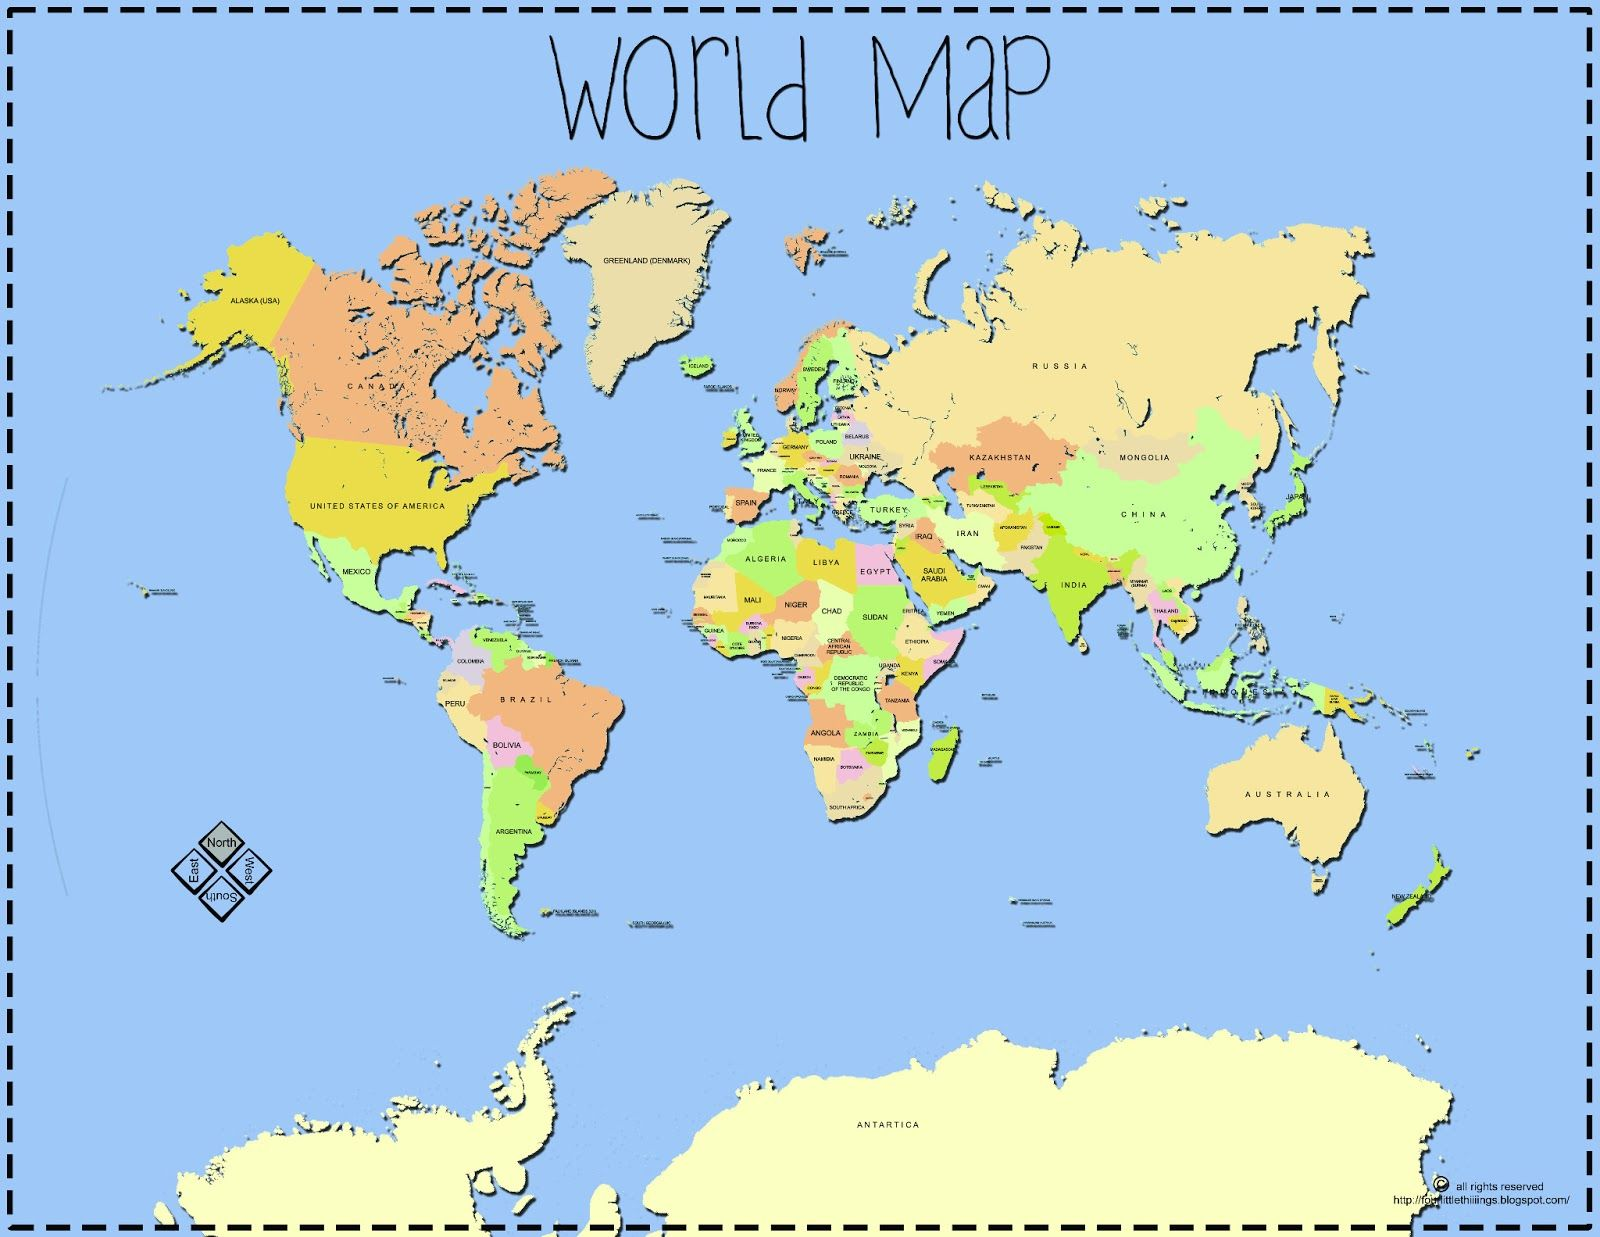 WORLD MAP LABELS HD Wallpapers Pinterest Android Apps And - World map labels